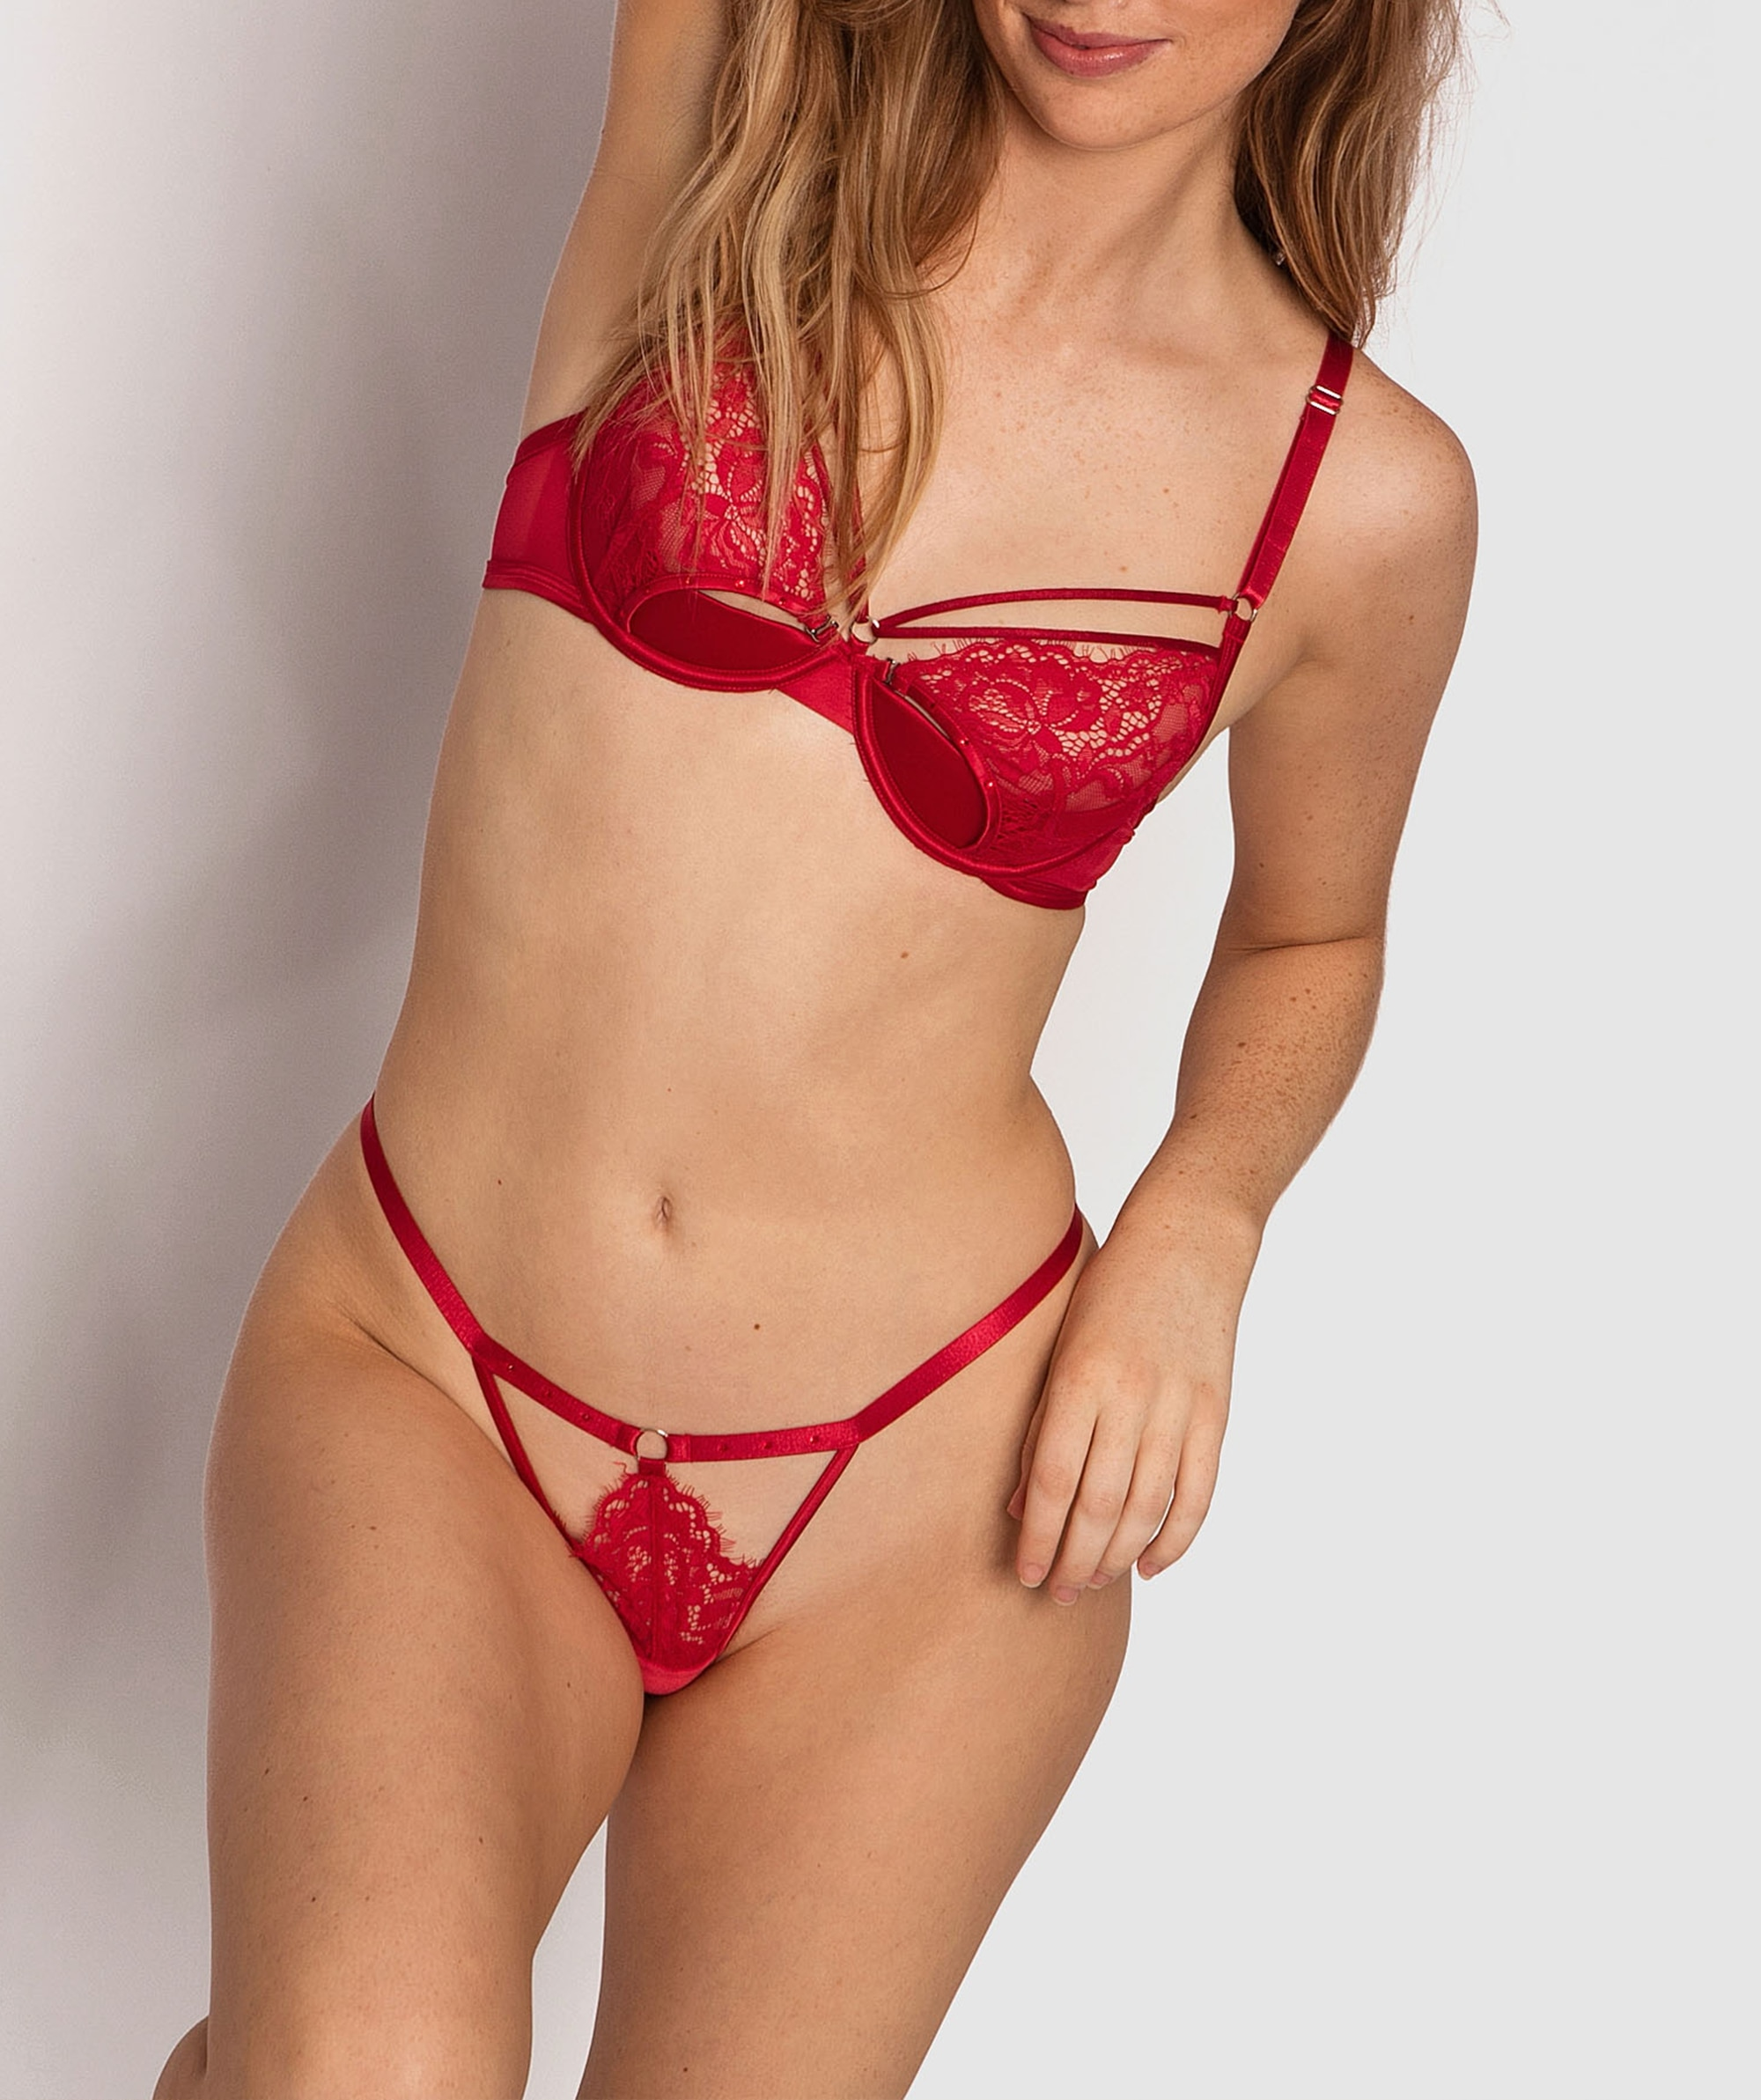 Mesmerize 1/2 Cup Bra - Red